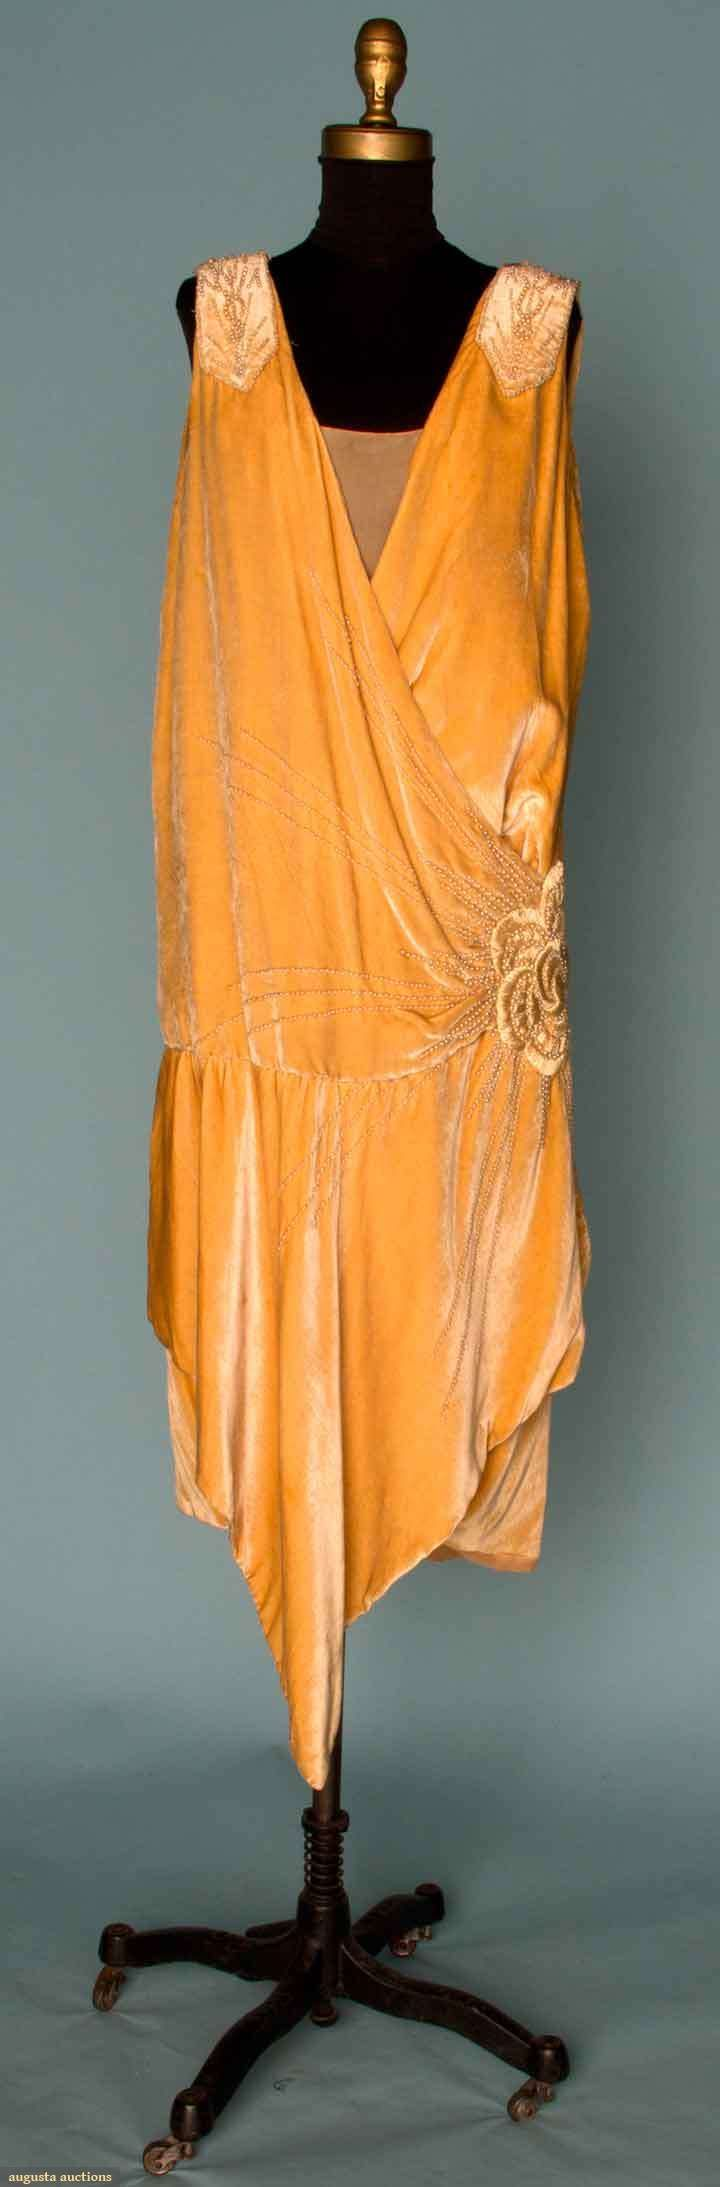 BEADED & EMBROIDERED FLAPPER DRESS, MID 1920s  Faun silk velvet, large Deco rose embroidered over left hip in silk floss & pearl beads, beaded pearl bands descend from shoulder to low back neckline & ties over CB, a-symmetrical hem flounce, silk lining